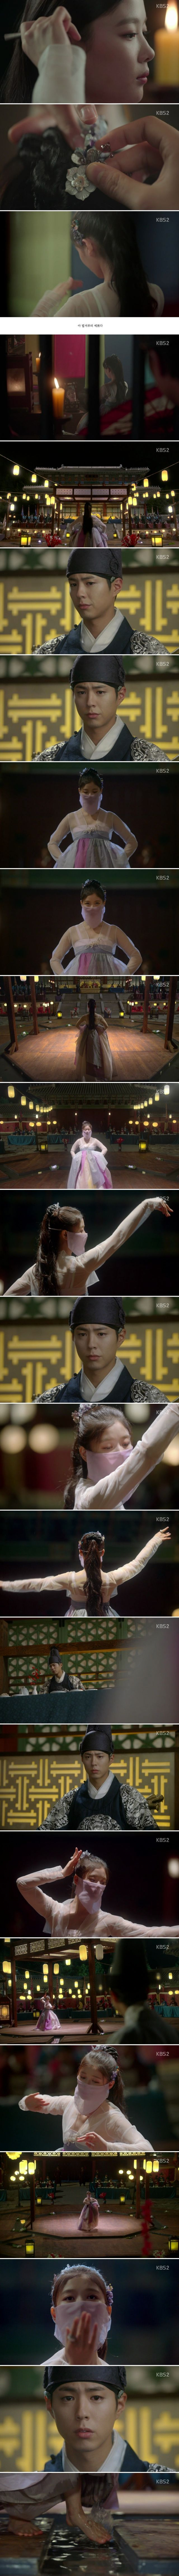 Added episode 4 captures for the Korean drama 'Moonlight Drawn by Clouds'.